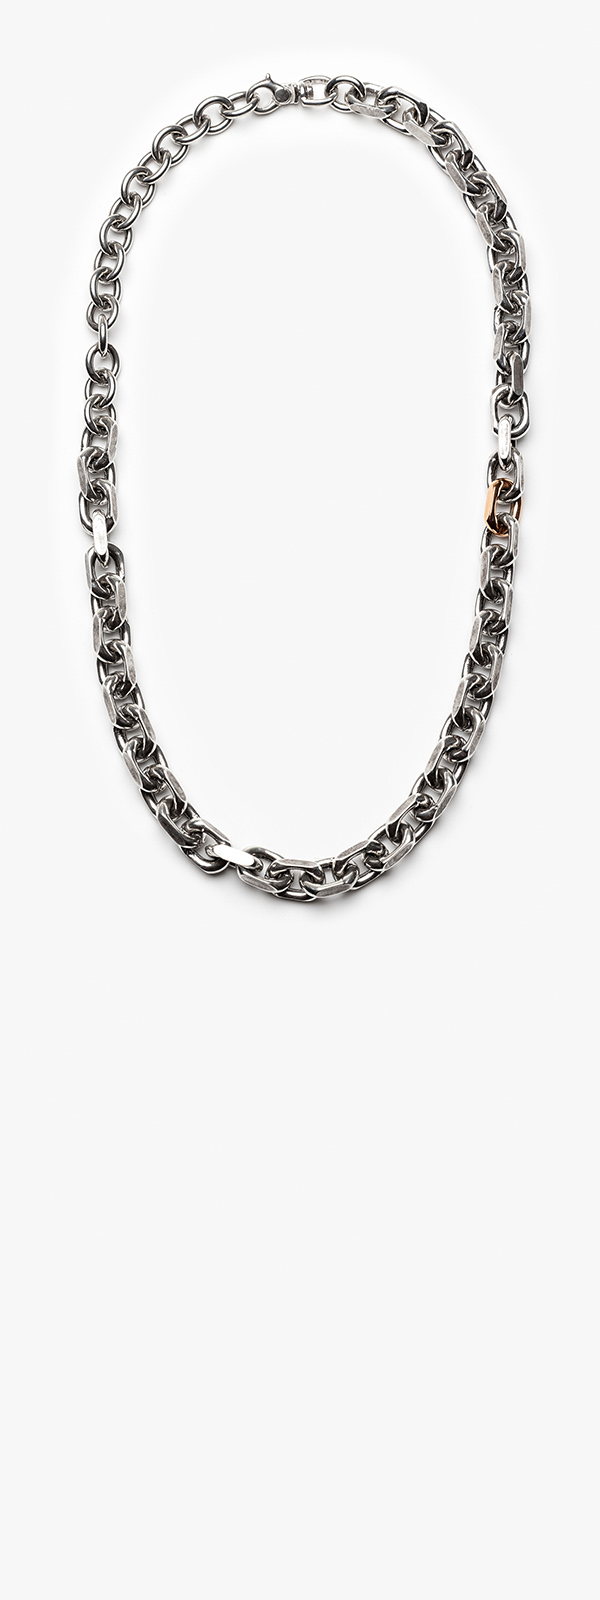 Image of Mixed Metal Necklace 009